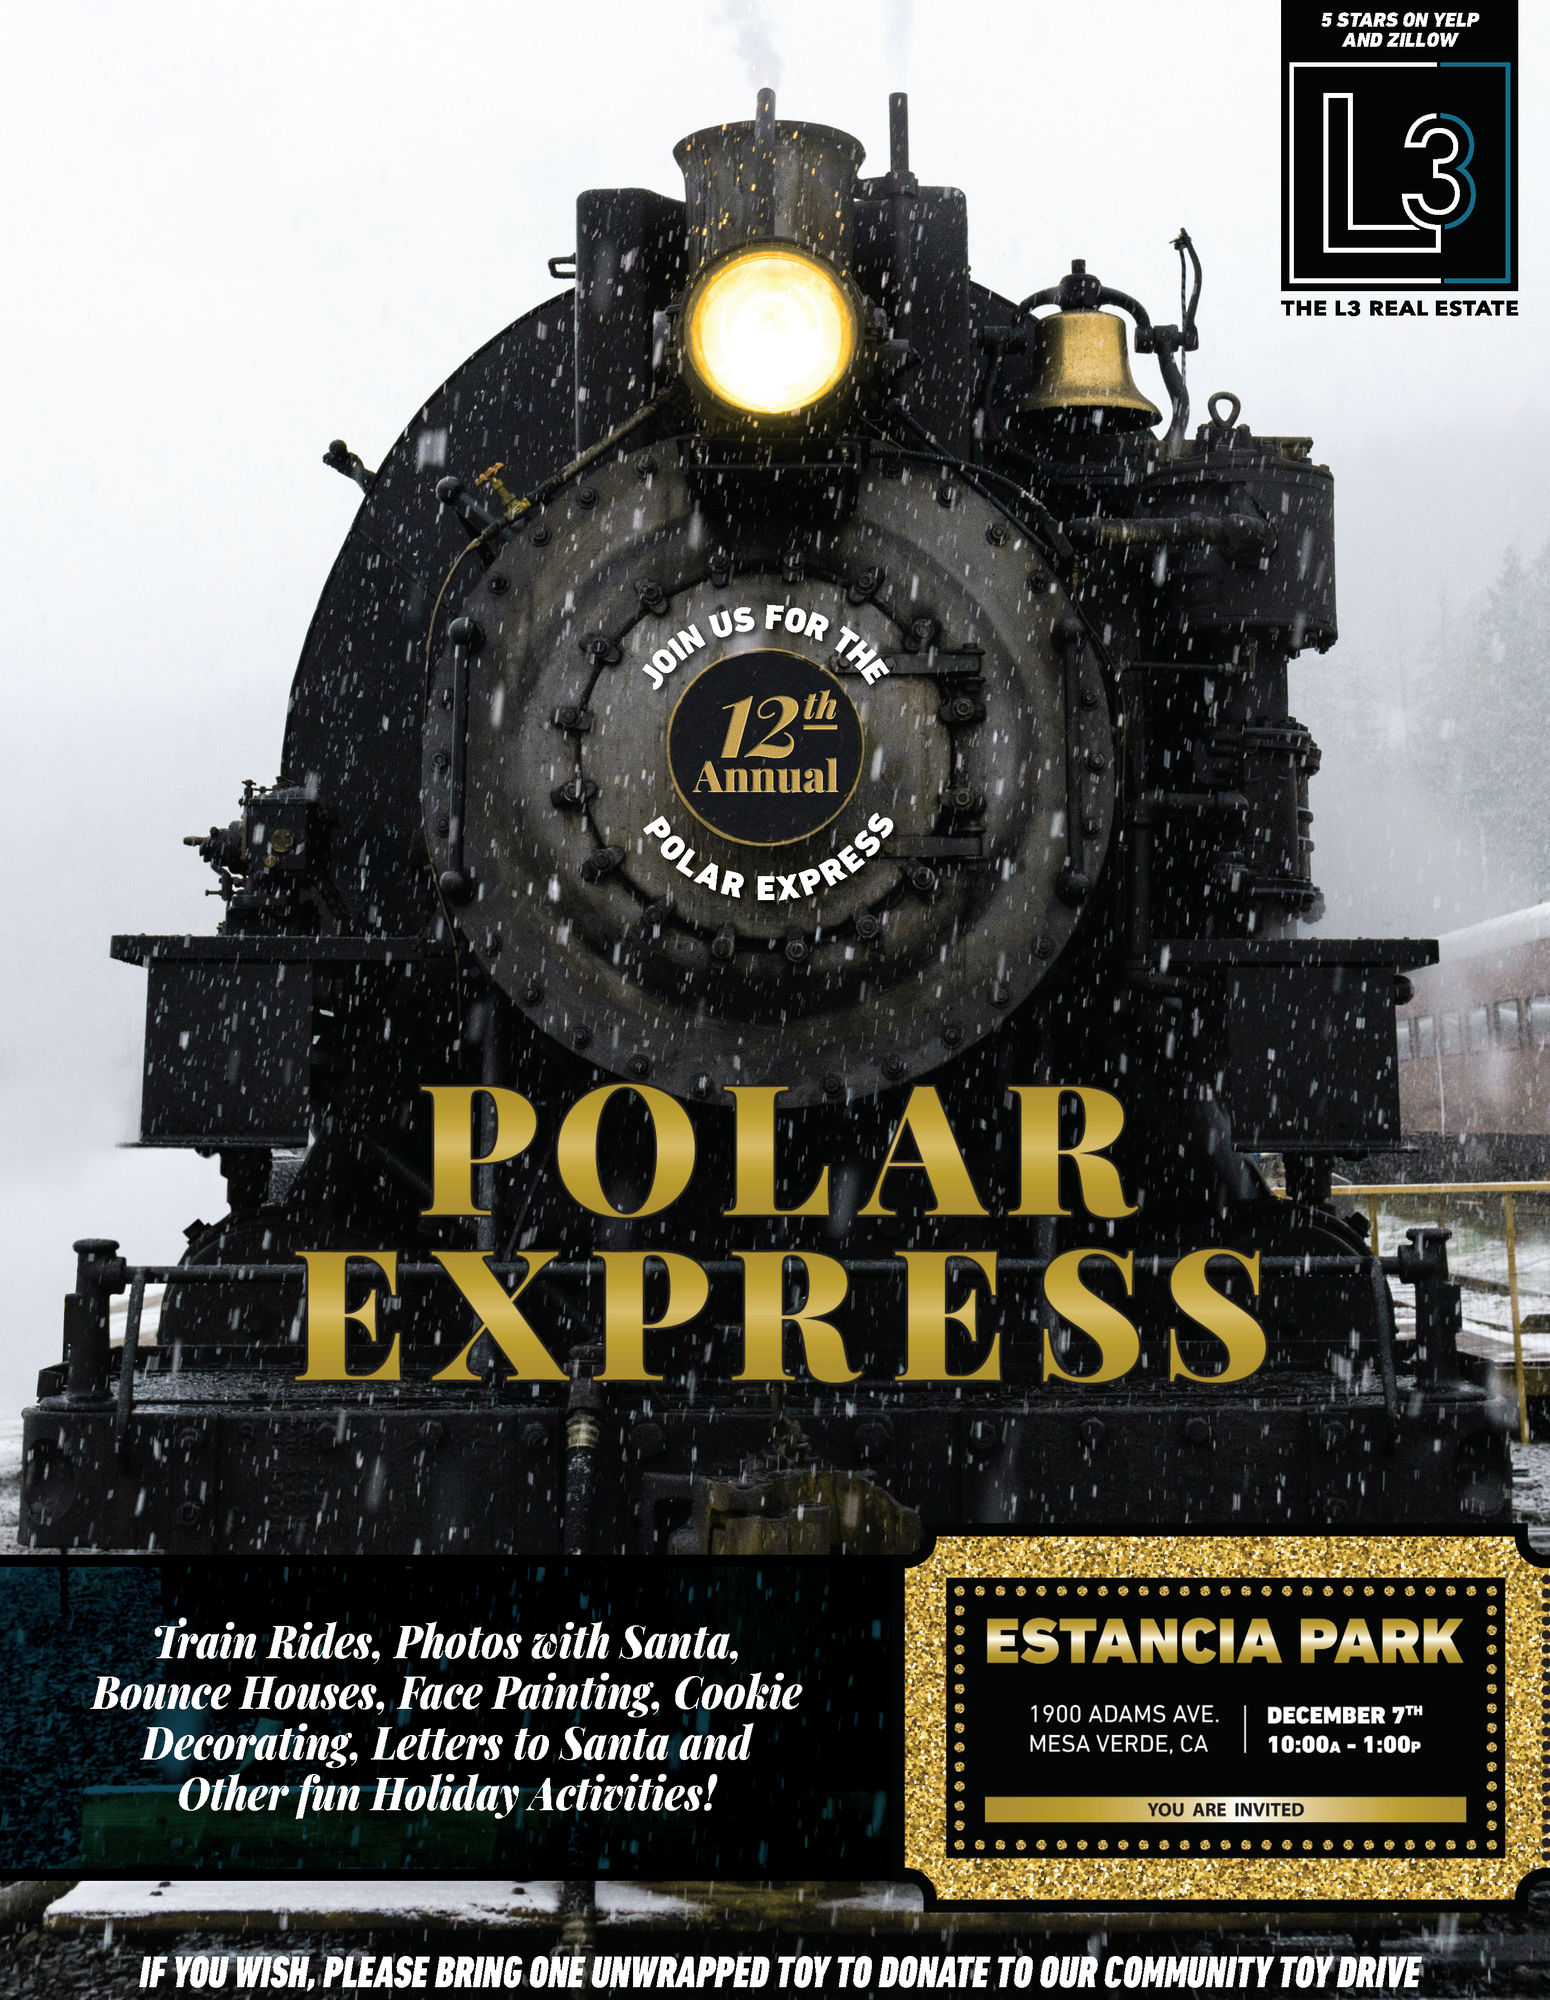 The L3 Real Estate Presents Polar Express 2019